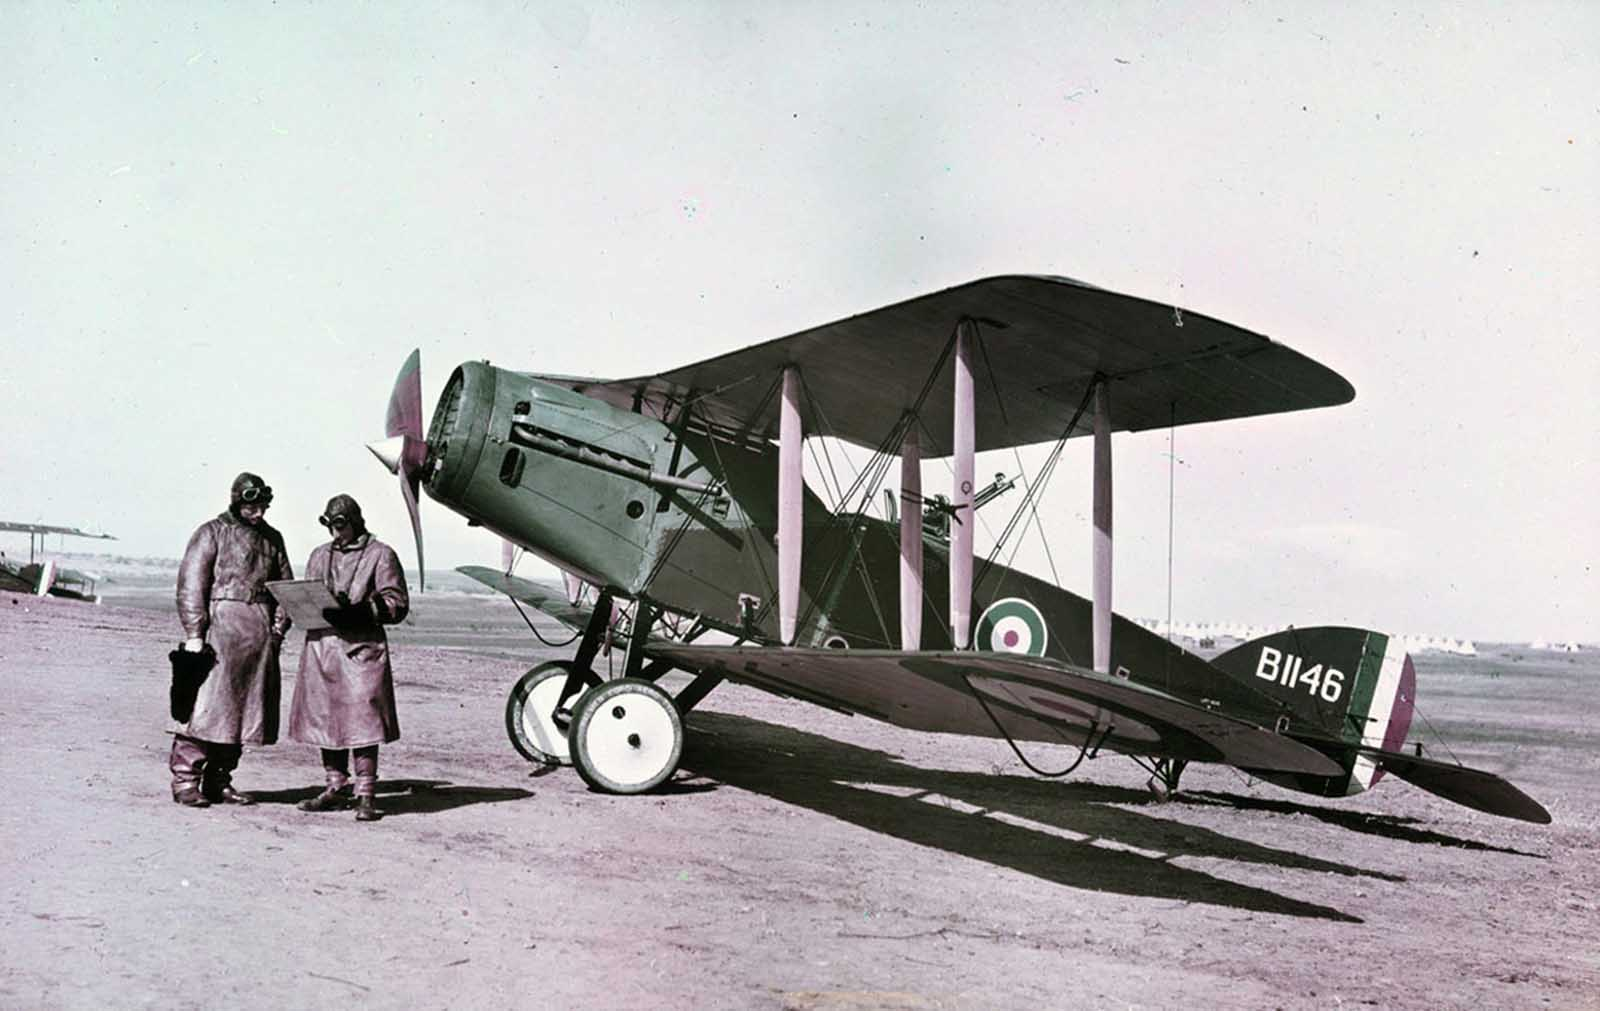 Captain Ross-Smith (left) and Observer in front of a Modern Bristol Fighter, 1st Squadron A.F.C. Palestine, February 1918. This image was taken using the Paget process, an early experiment in color photography.